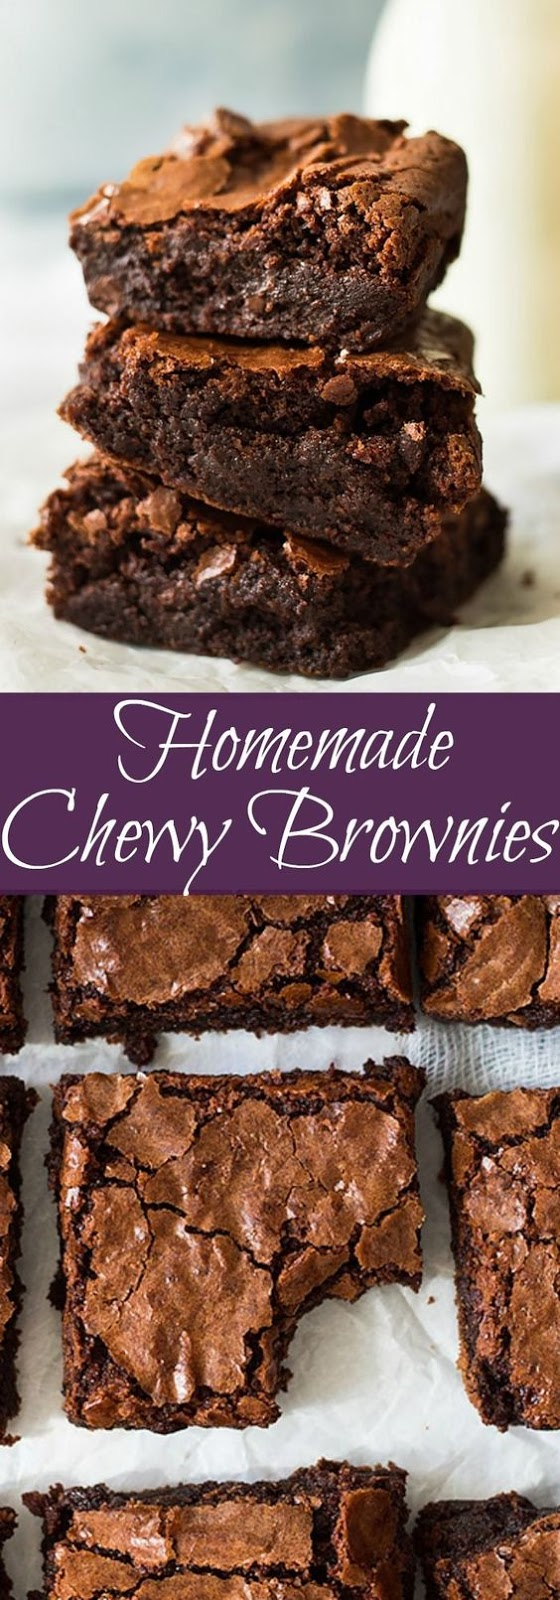 Home Made Chewy Browníes